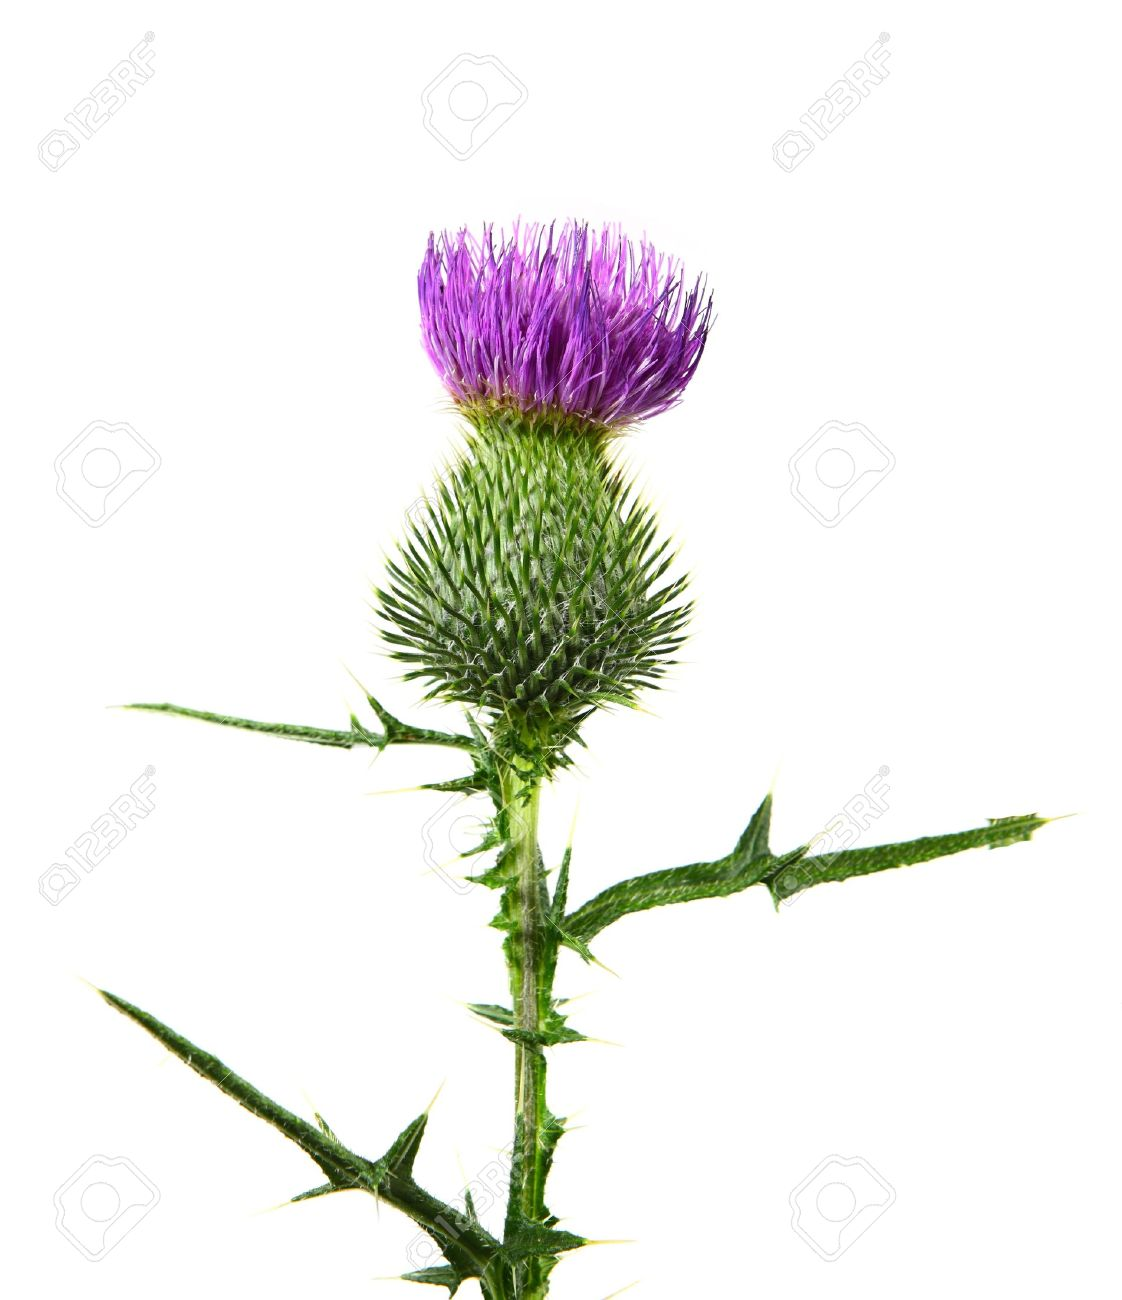 Milk Thistle Flower Plant Isolated On White Background Stock Photo